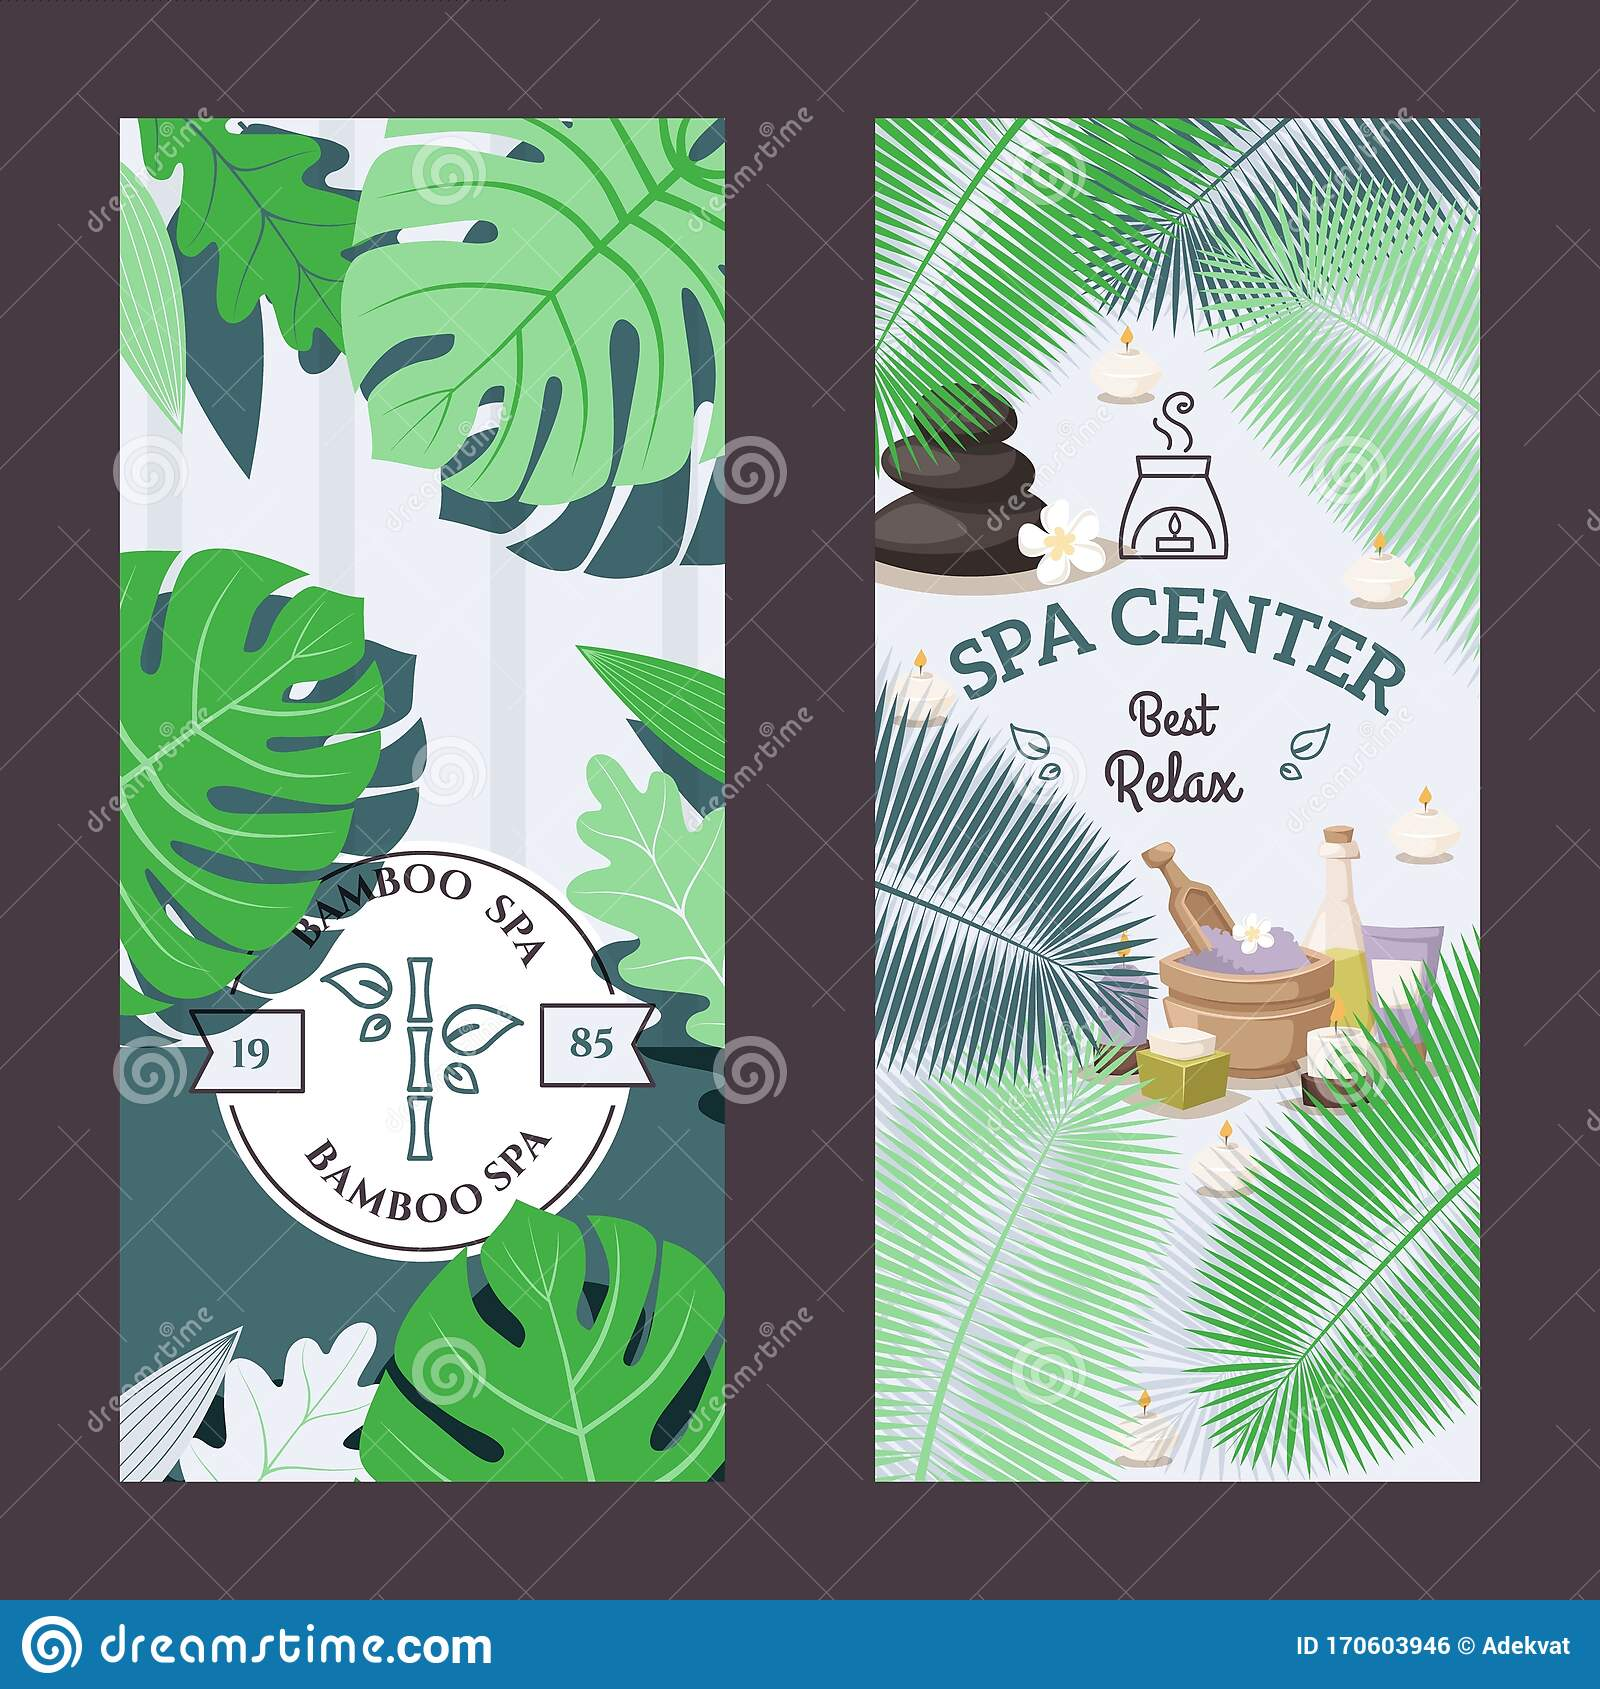 Spa Center Advertisement Banner Vector Illustration Beauty Salon Promotion Campaign Relaxing Procedures Skincare Stock Vector Illustration Of Atmosphere Label 170603946